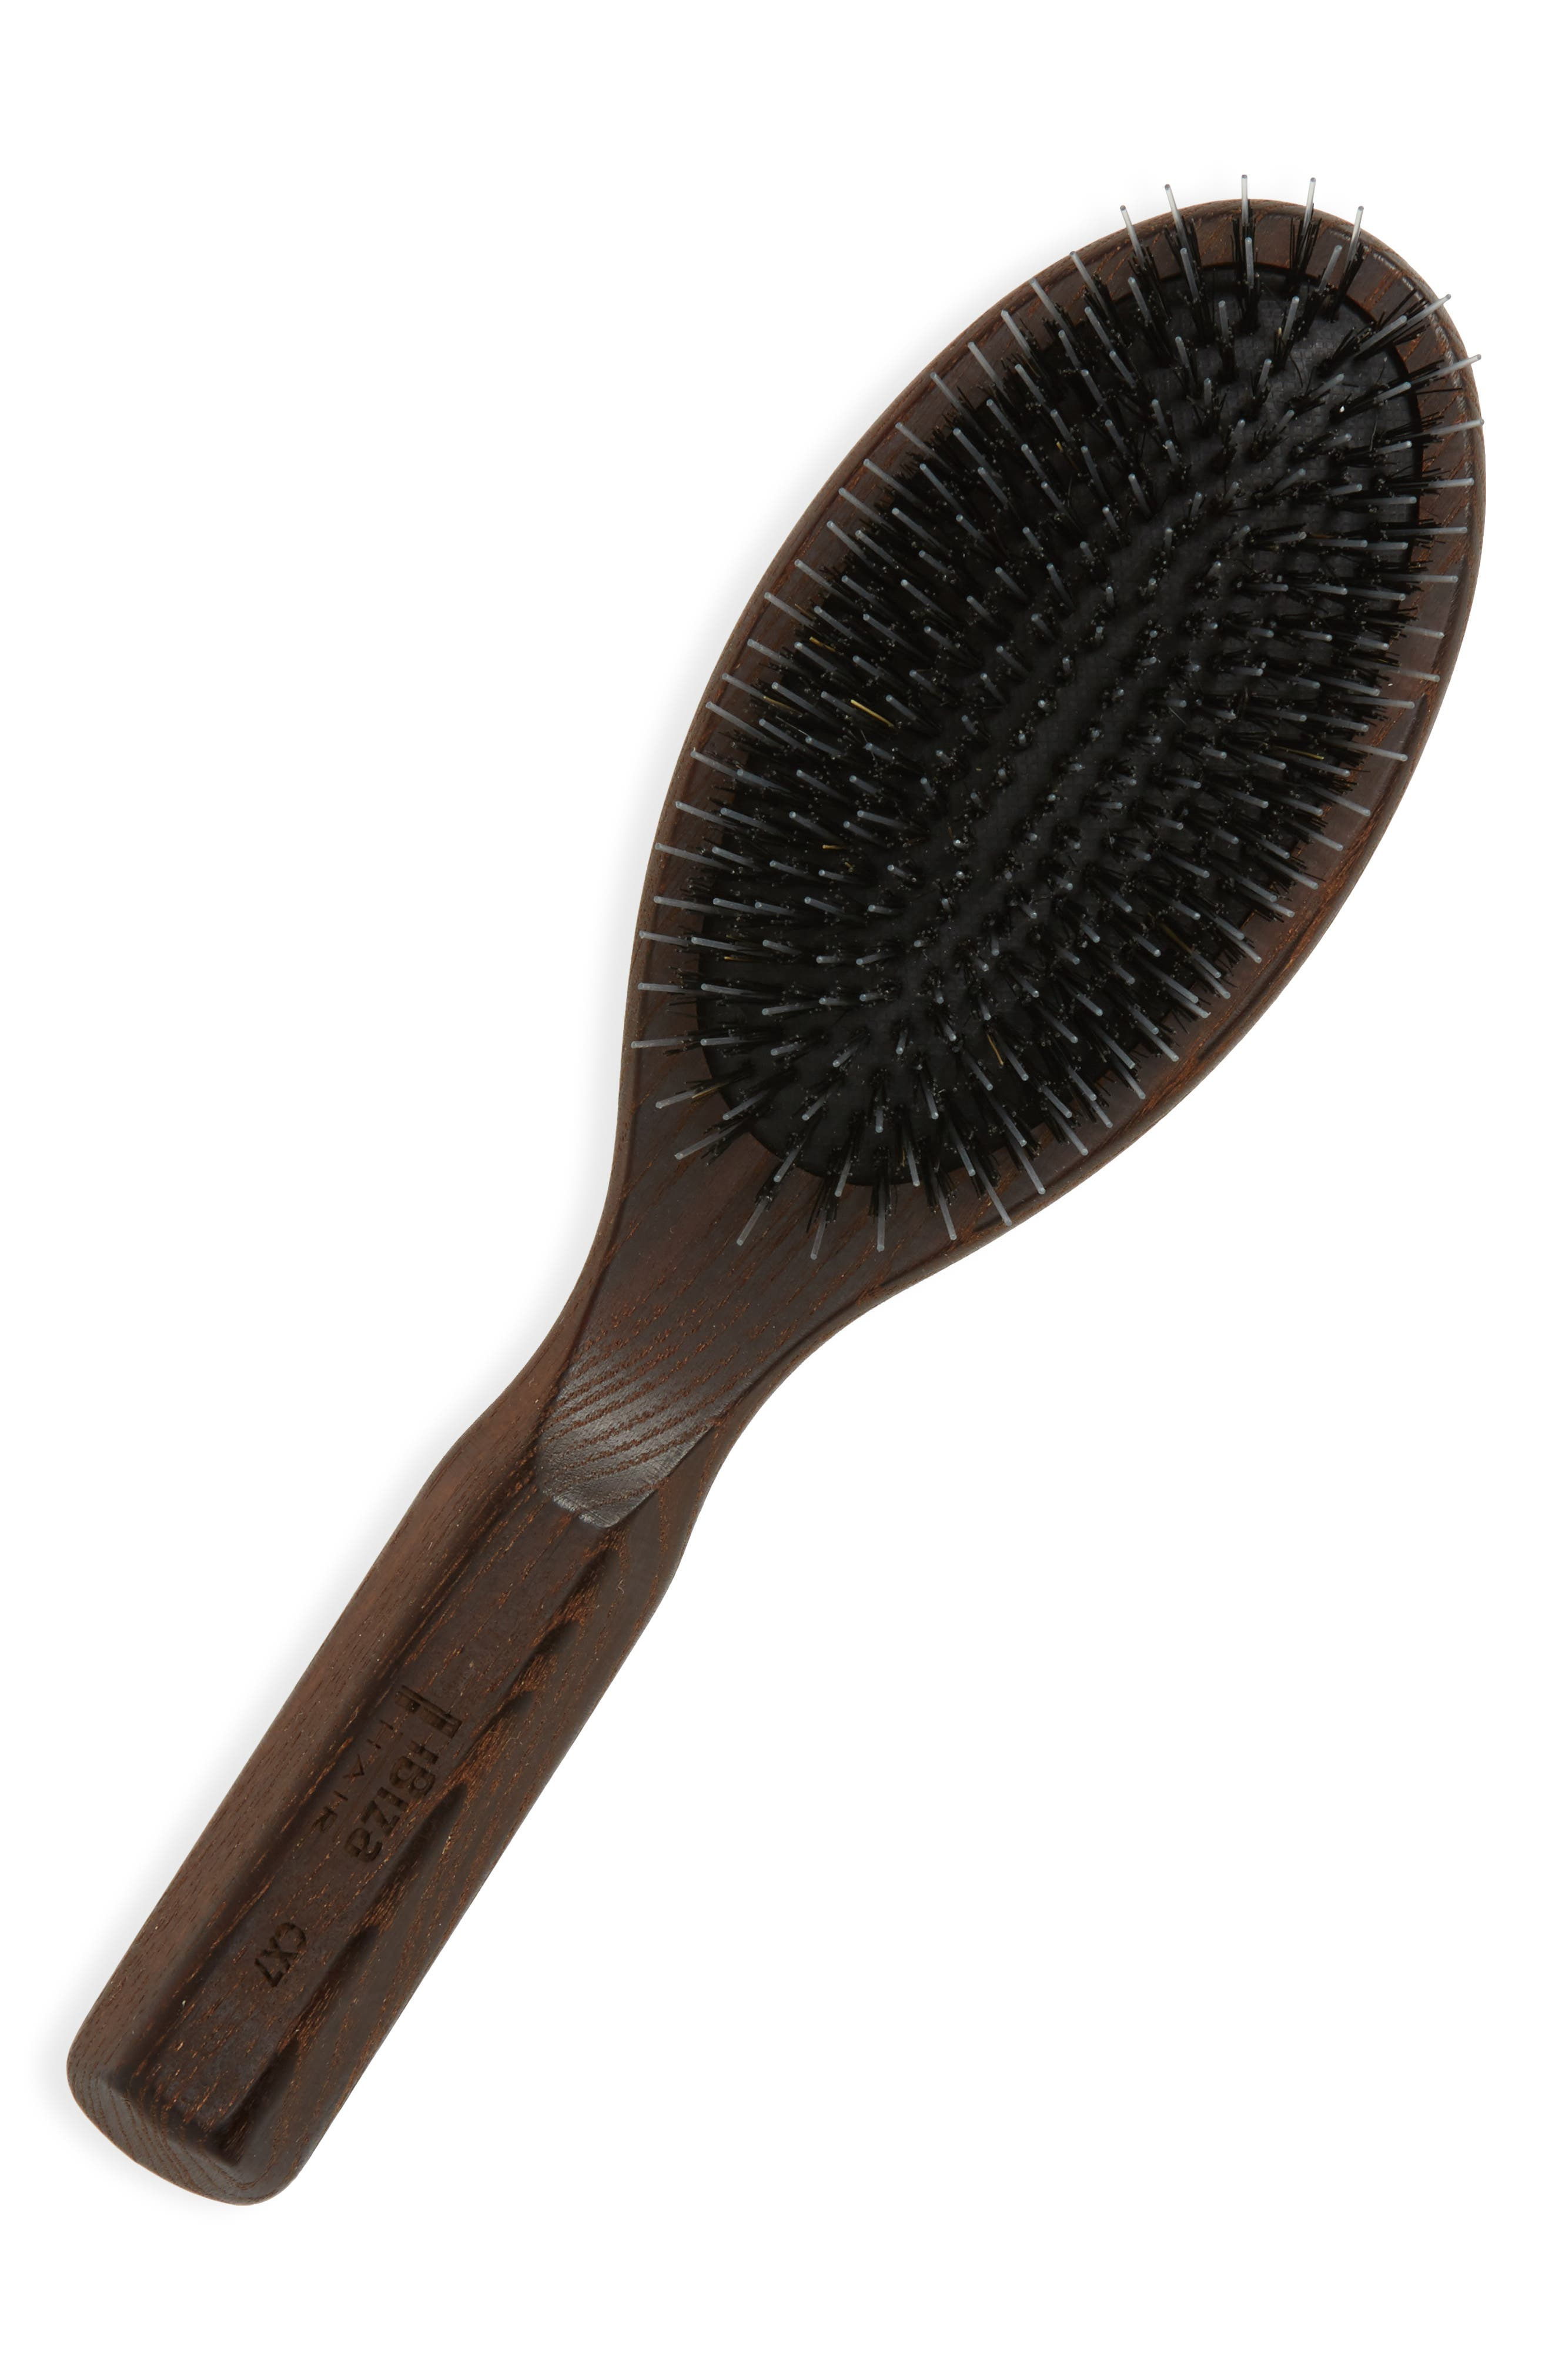 Hair CX7 Oval Handle Brush,                         Main,                         color, No Color